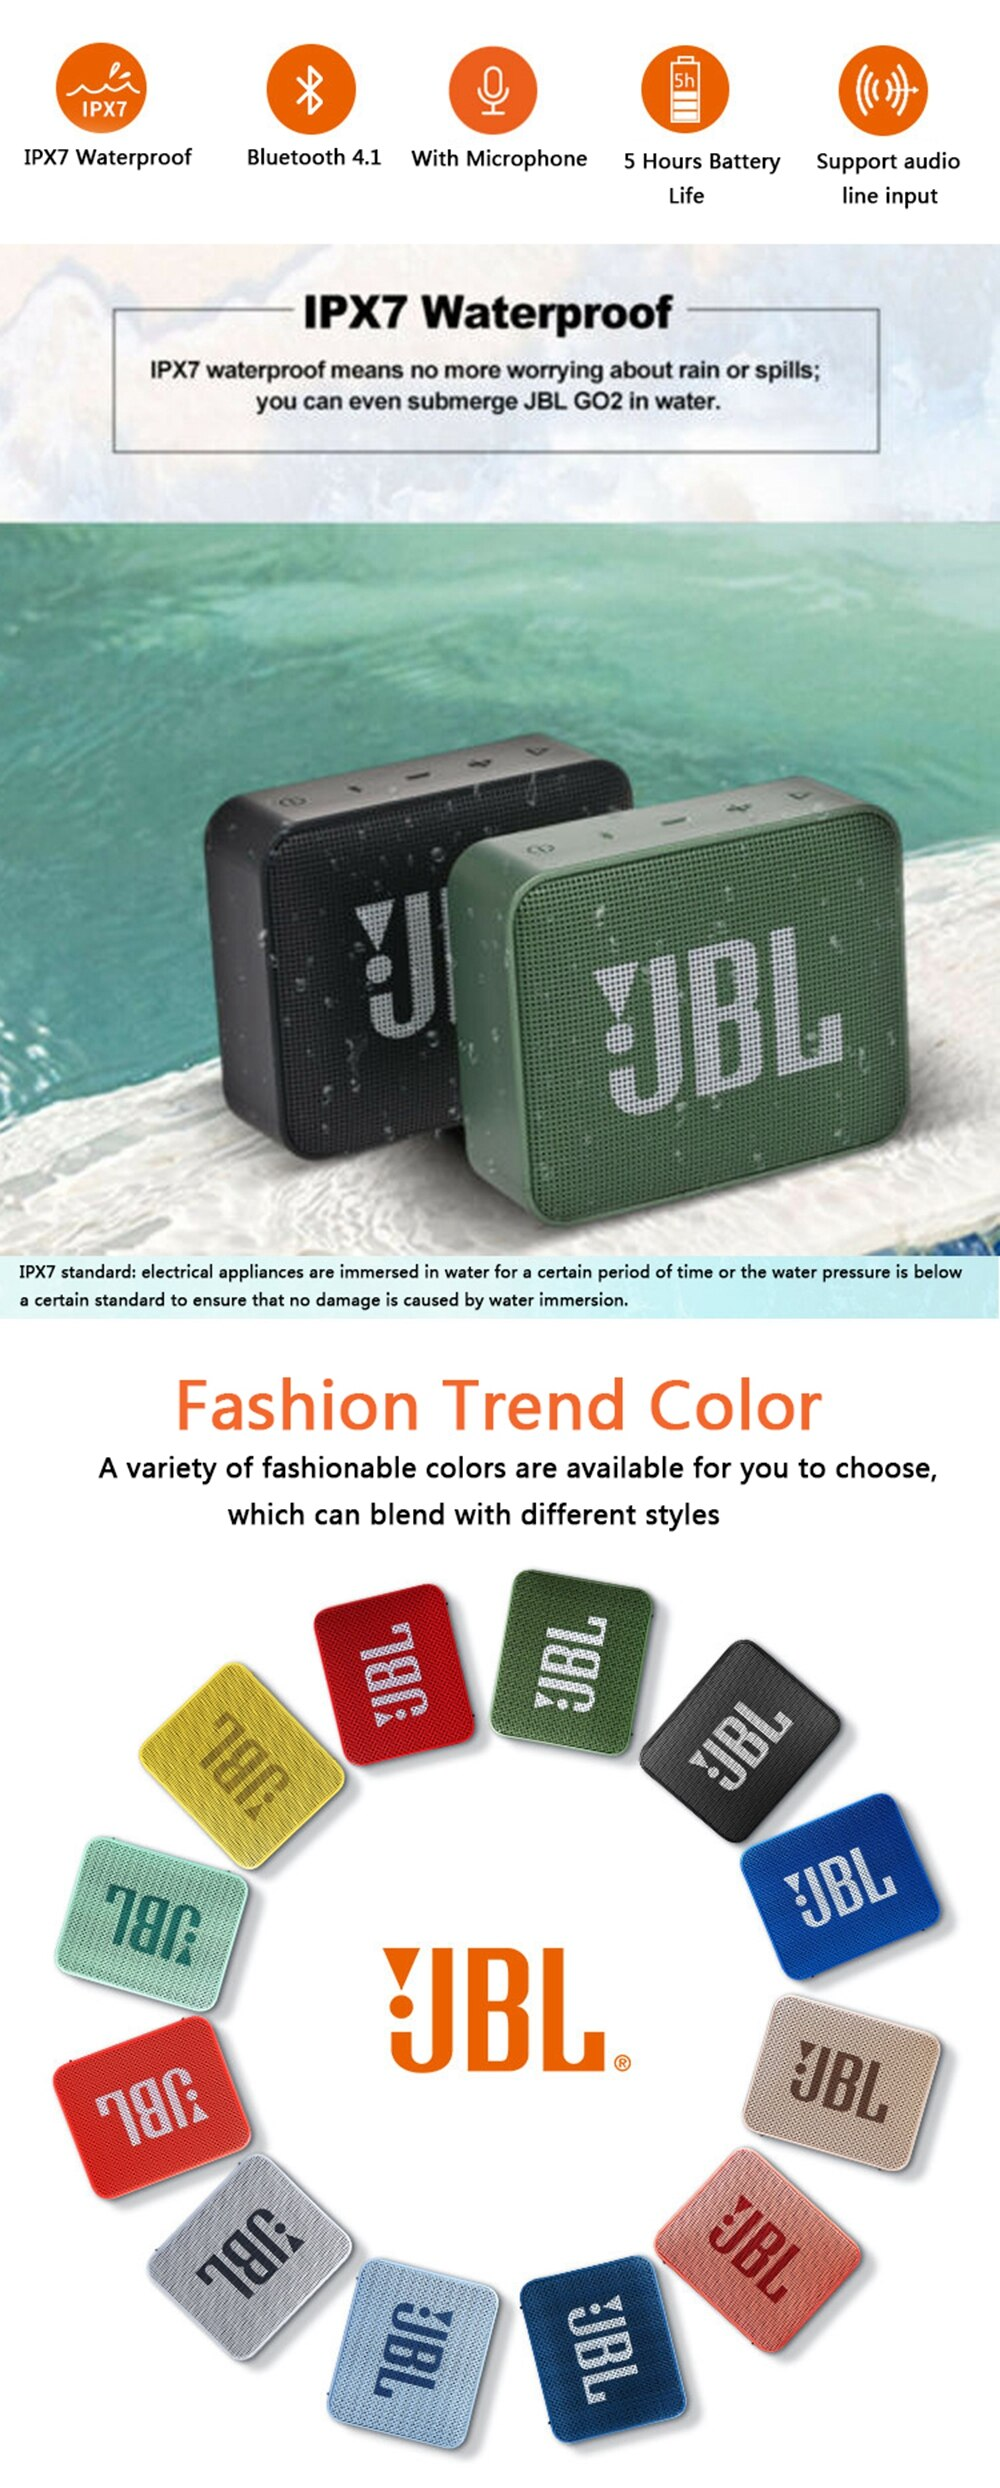 H830f44c0a3034cf5a8e62a81d78a17feE - JBL Go 2 Bluetooth Speaker Outdoor Sports Portable go2 Speakers Stereo Waterproof Subwoofer Travel Mini Boombox GO 3 Sounfbar